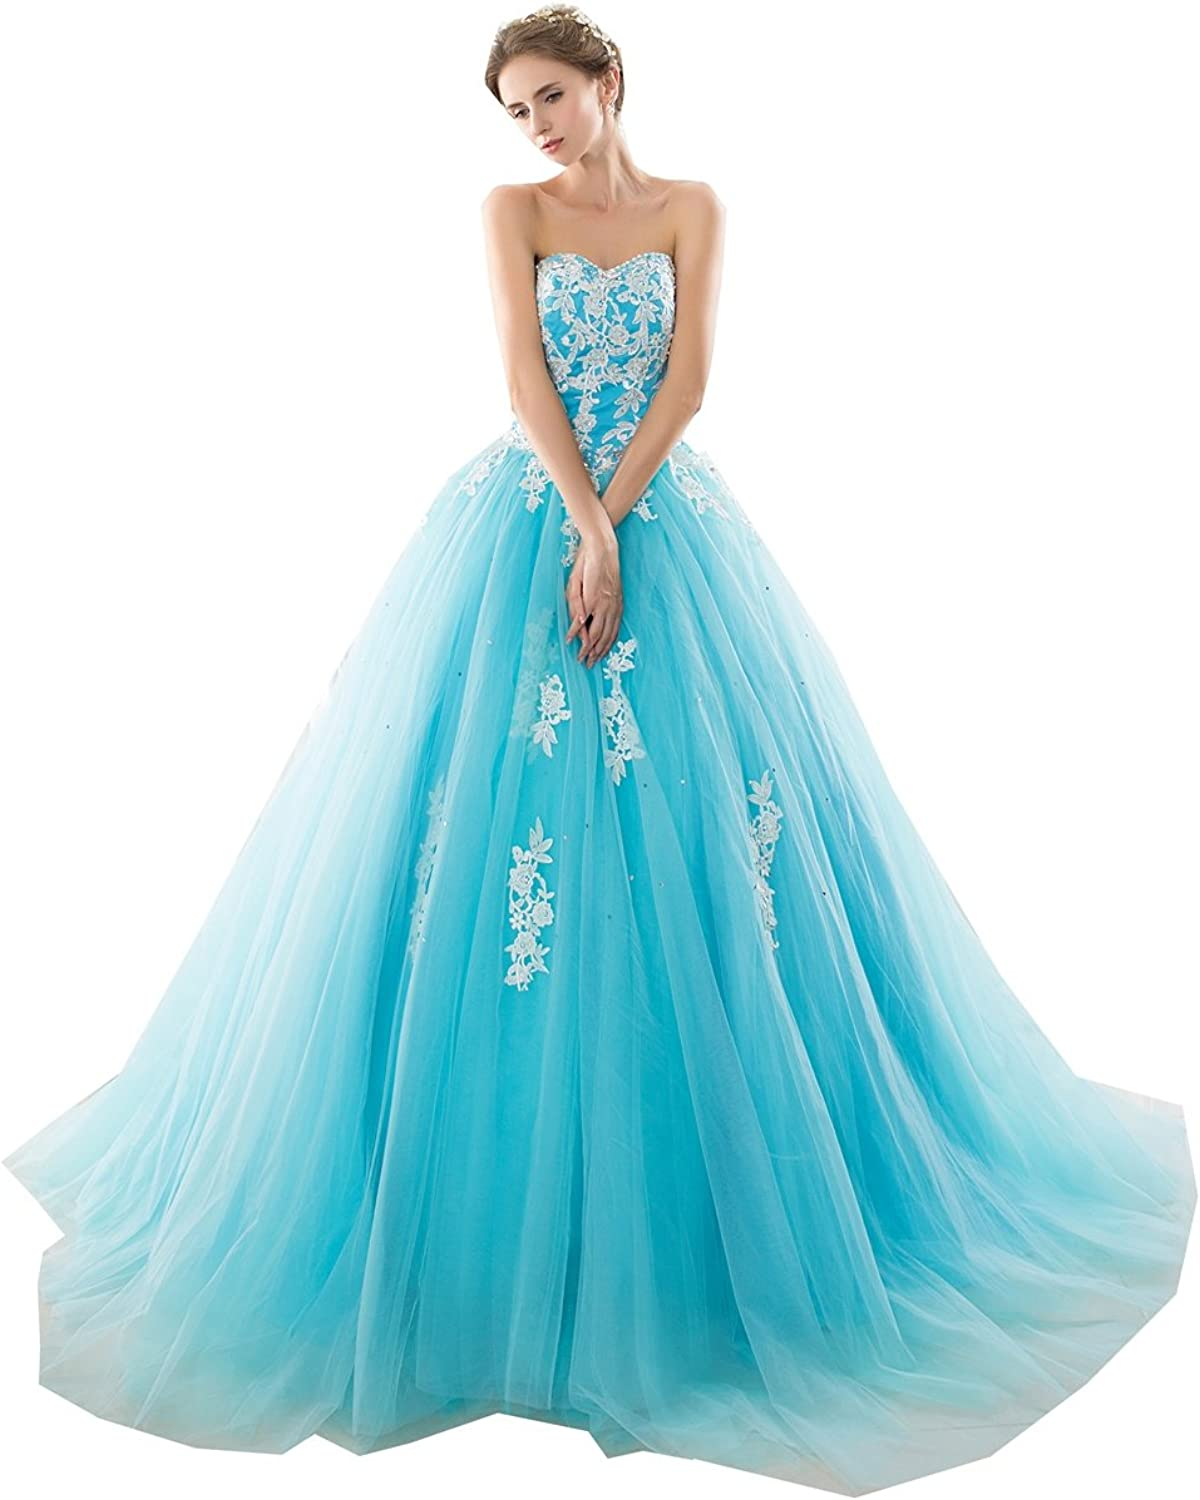 Lavaring Women's Sweetheart Appliques Beading Lace up Court Train Prom Dress